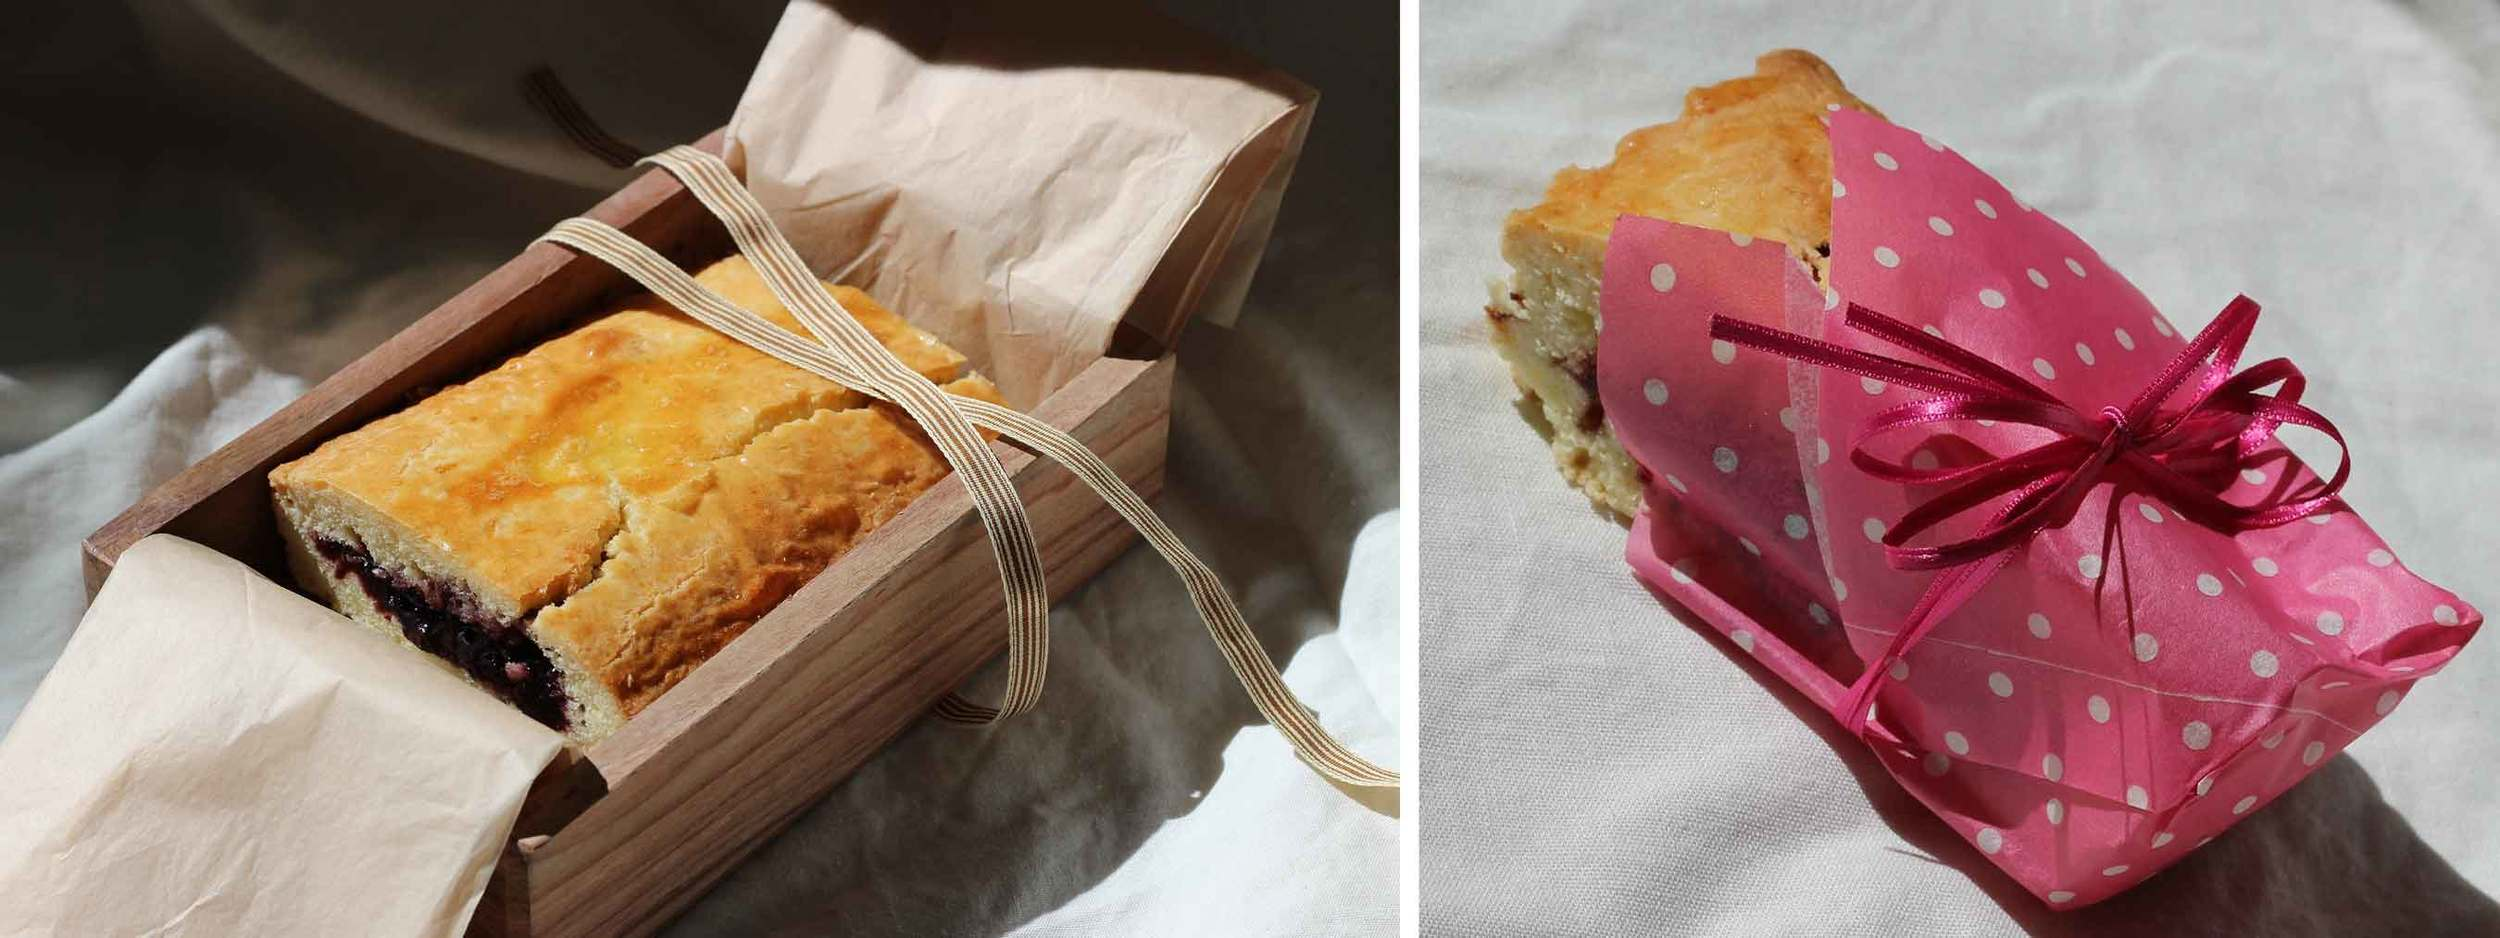 gâteau basque as gifts and snacks, recipe by Thread & Whisk